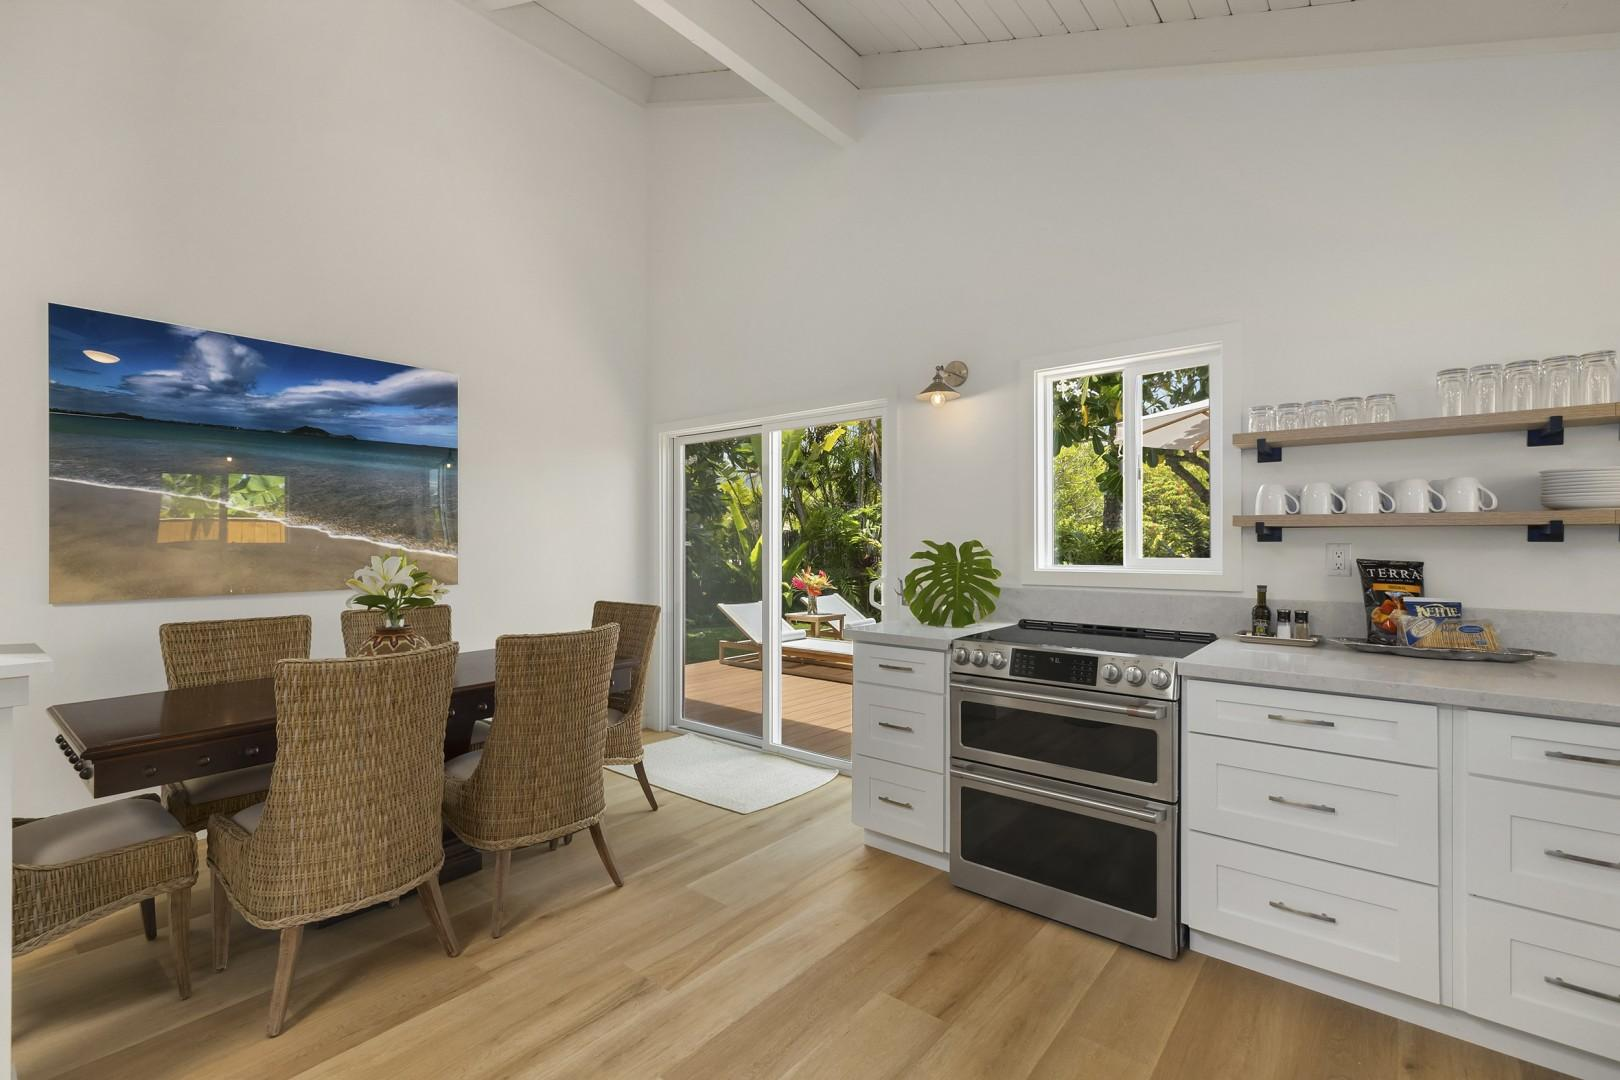 Dining Room with natural lighting and opens to main lanai and garden area.